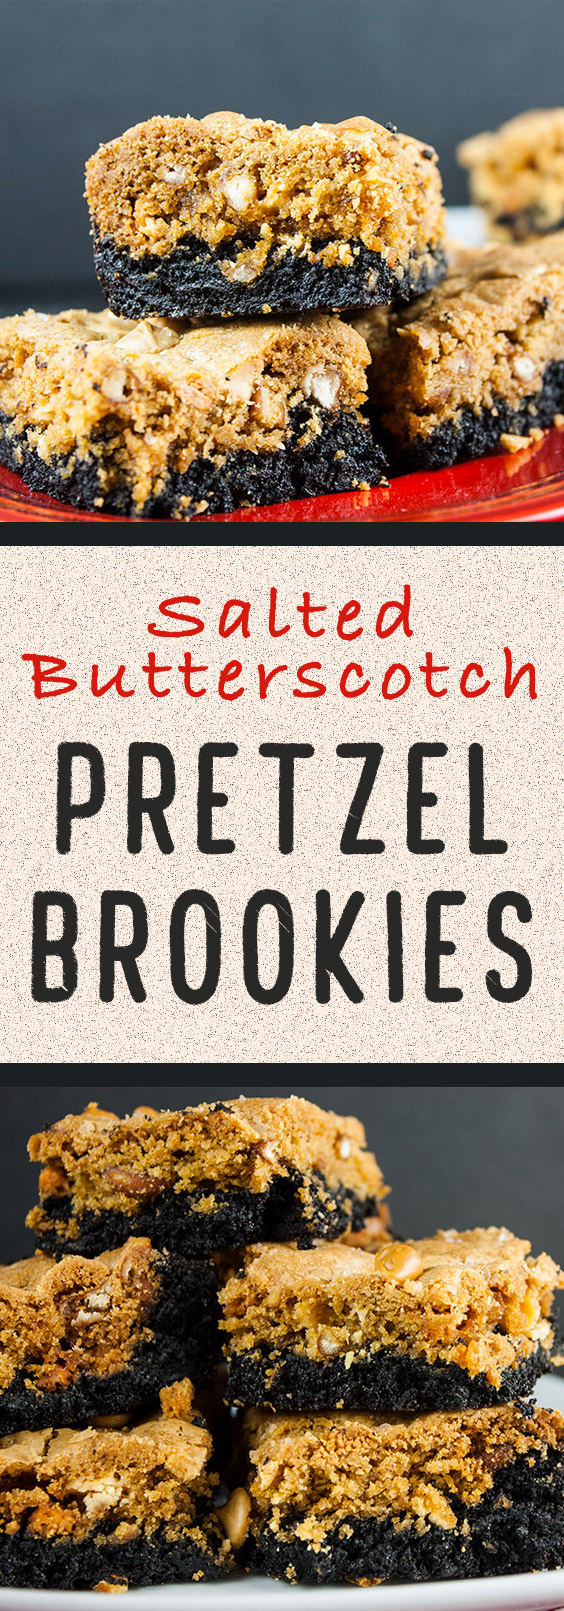 Salted Butterscotch Pretzel Brookies - Dark chocolate brownie topped with butterscotch pretzel cookie. The best of both worlds all in one bar!